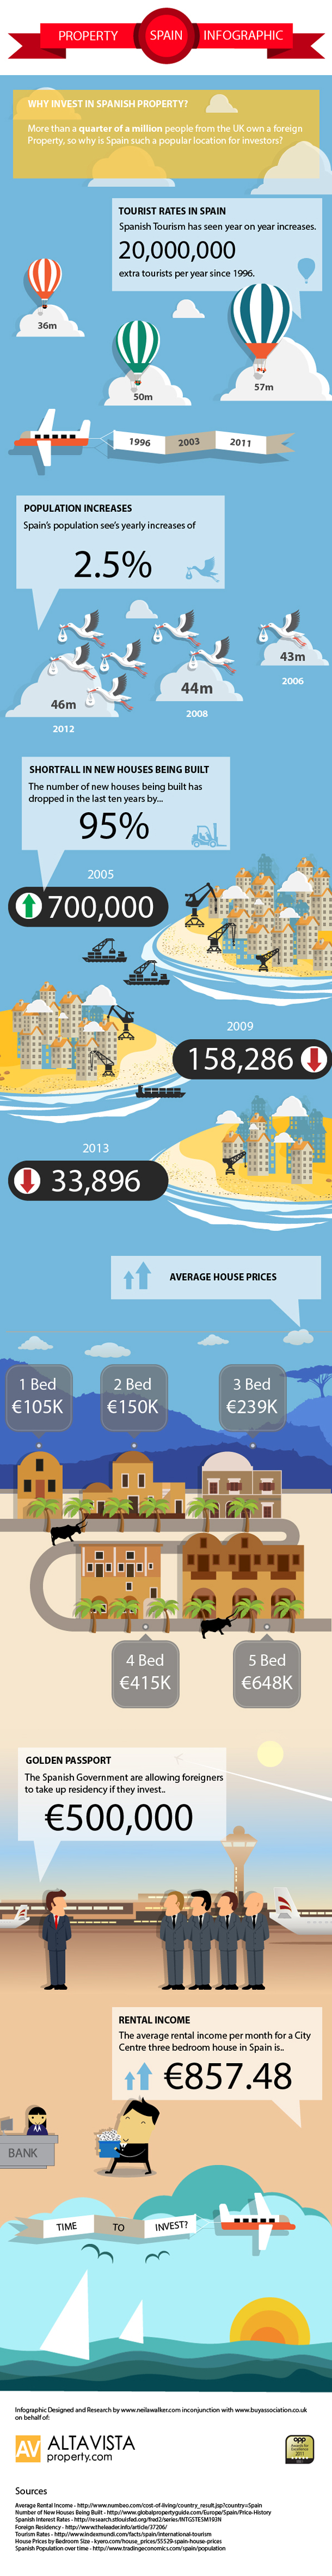 Spanish Property Infographic by Altavista Property